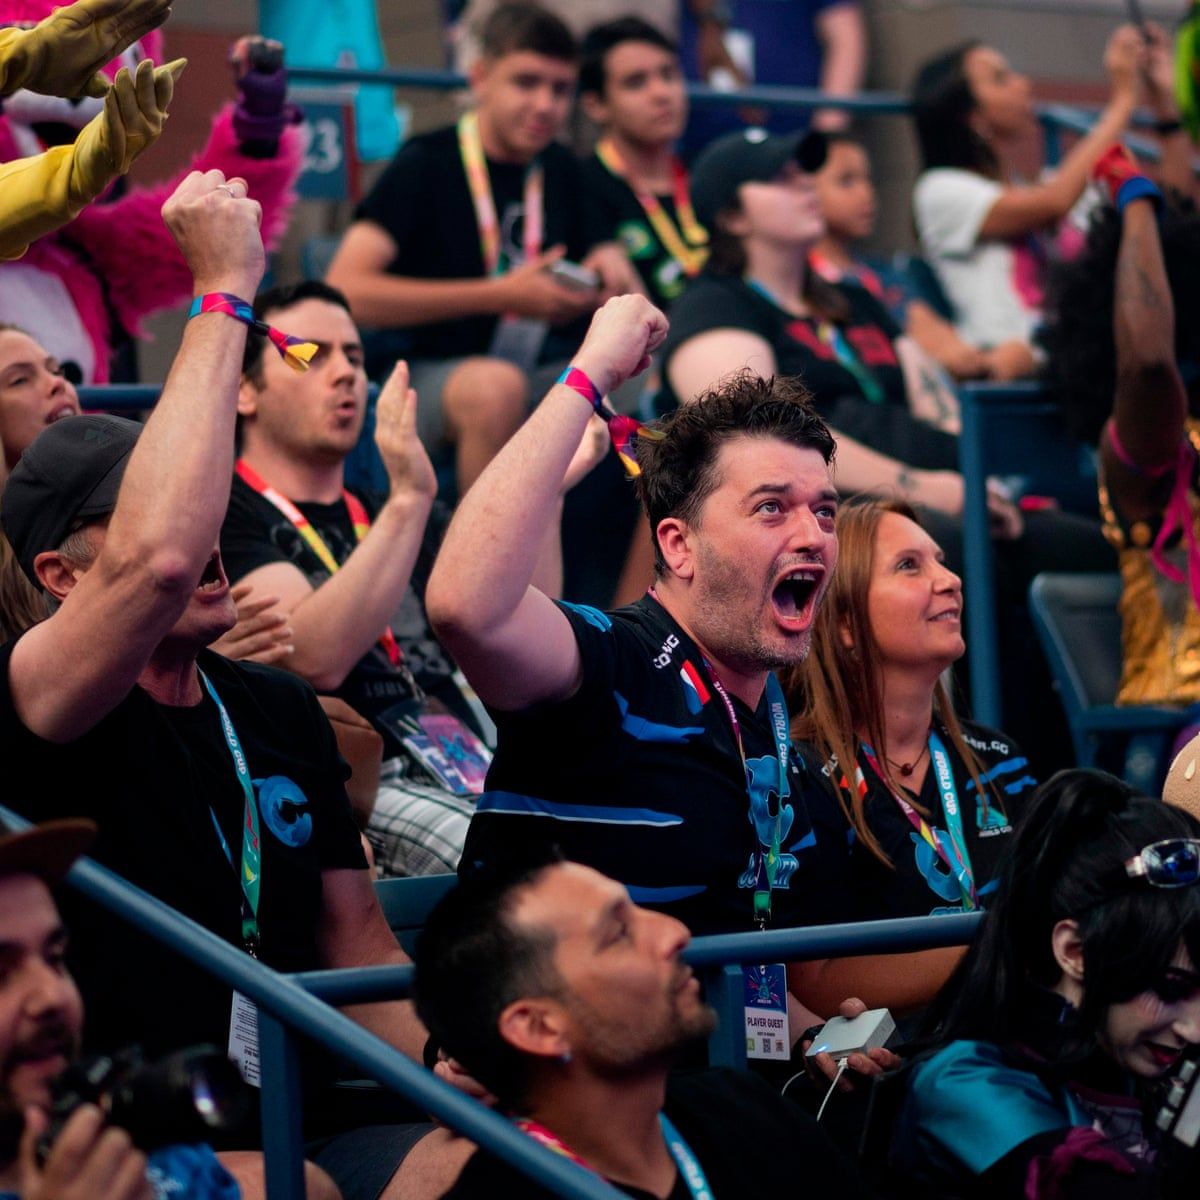 Boy Turns Into A Girl Fortnite British Boy Becomes Fortnite Millionaire In World Cup Tournament Fortnite The Guardian